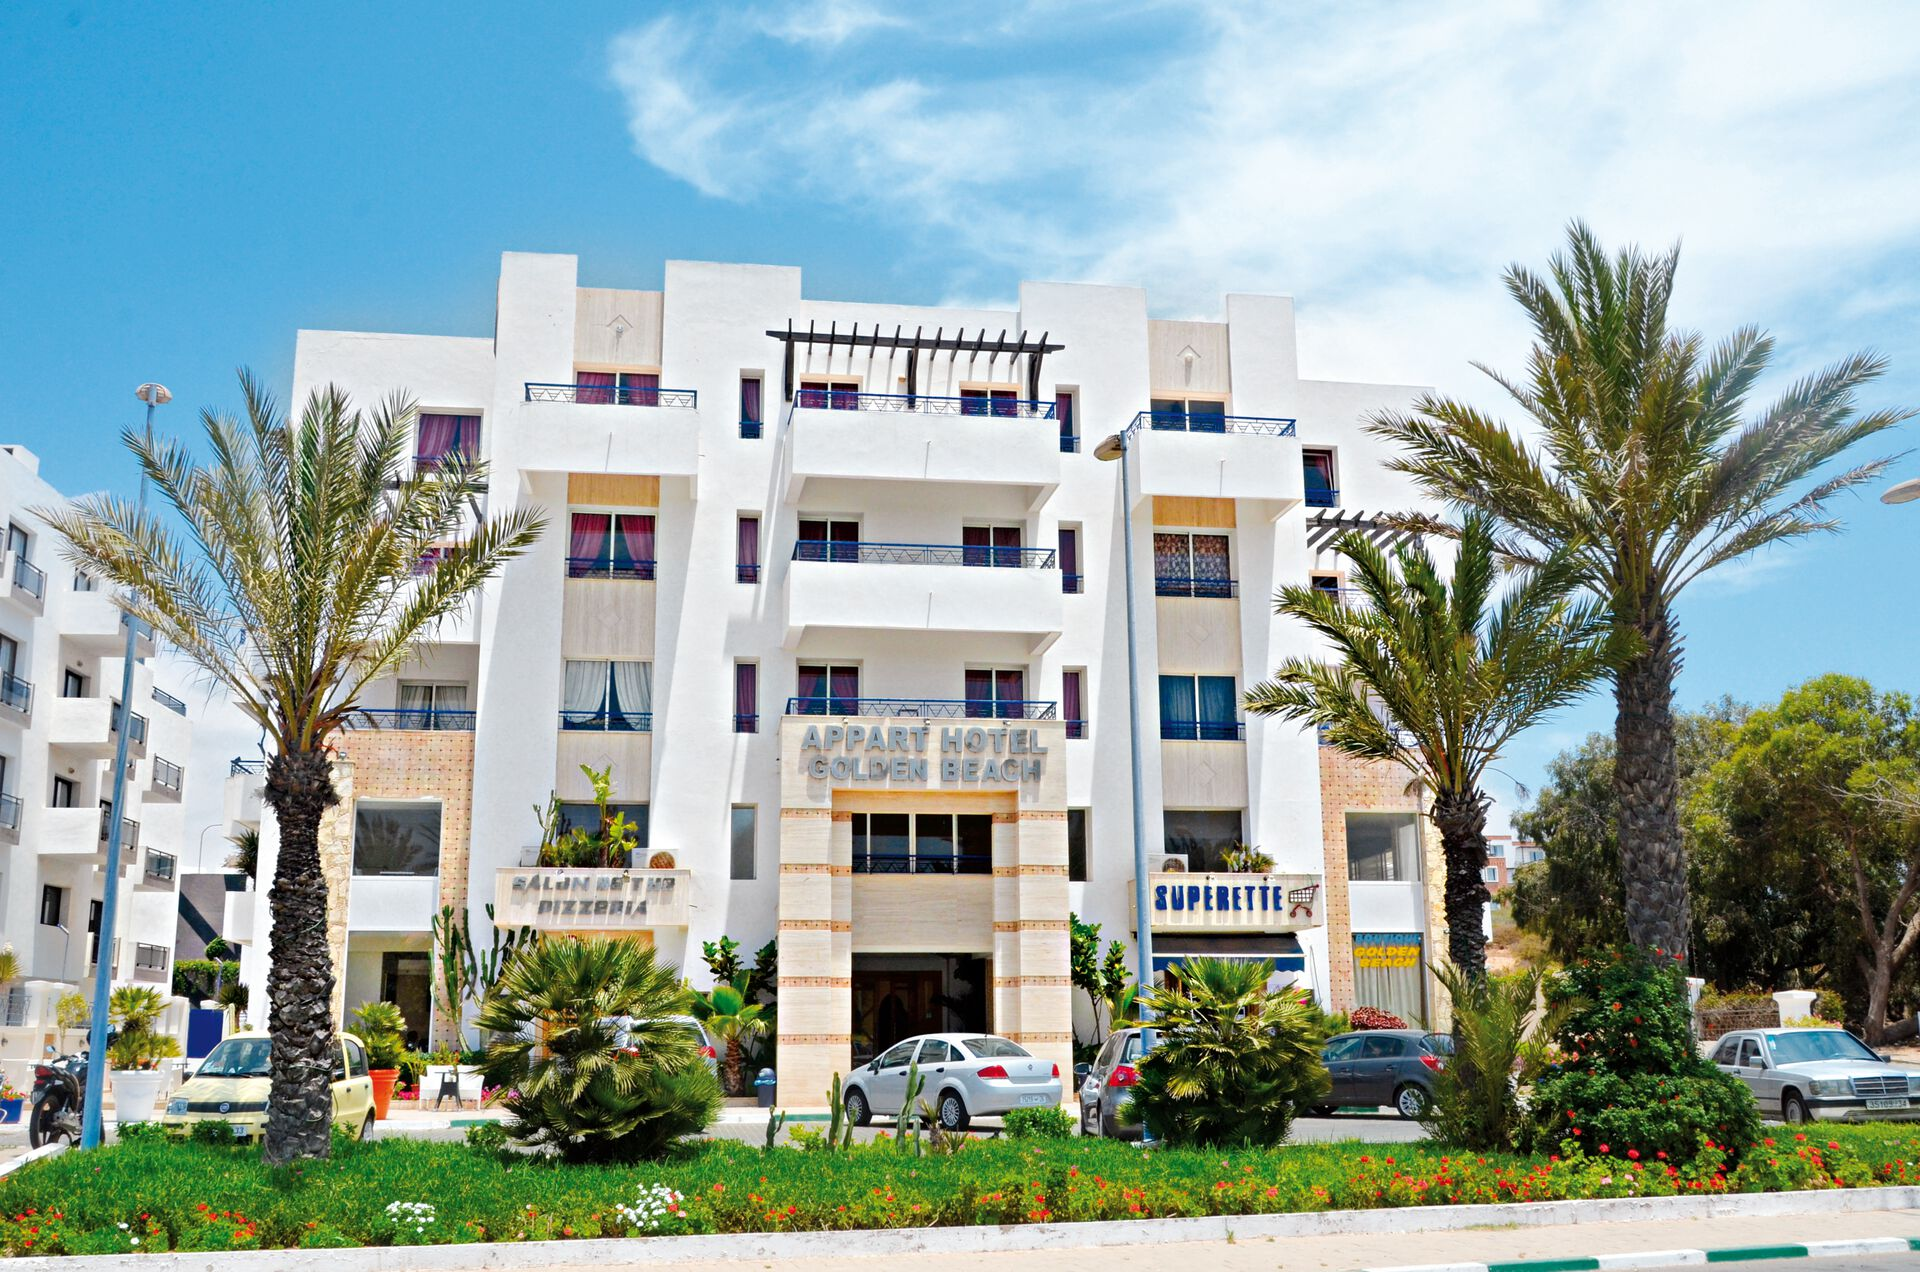 Séjour Agadir - Golden Beach Apparthotel - 4*